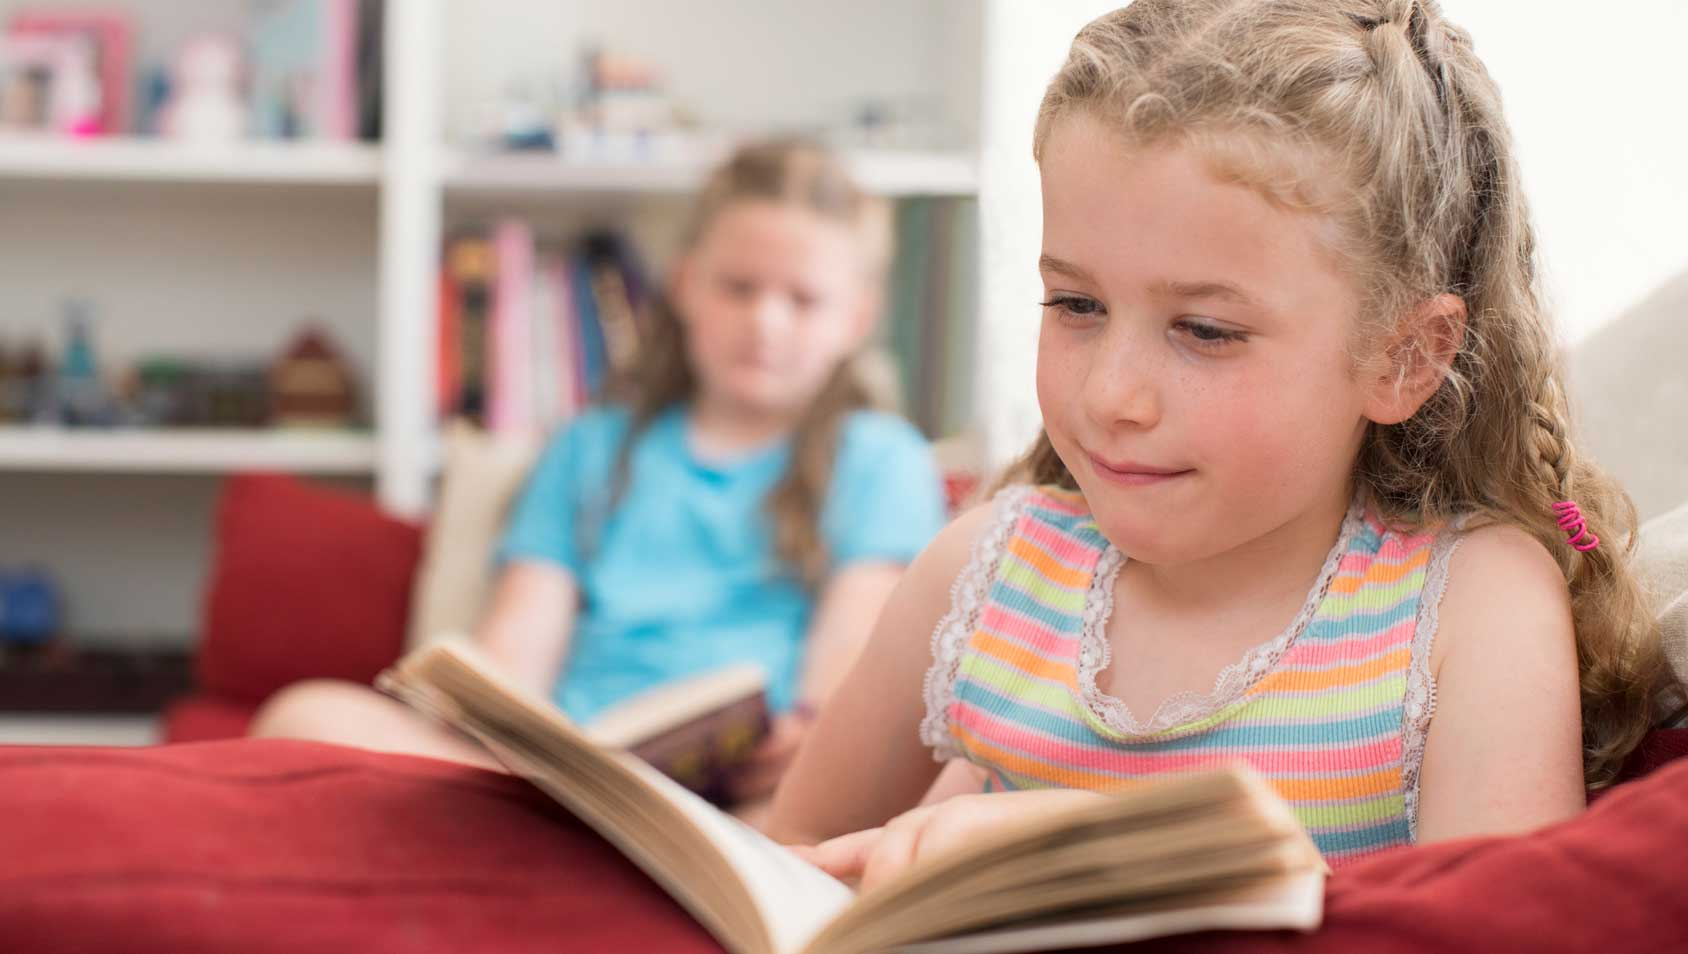 Girl reading a book, learning to read